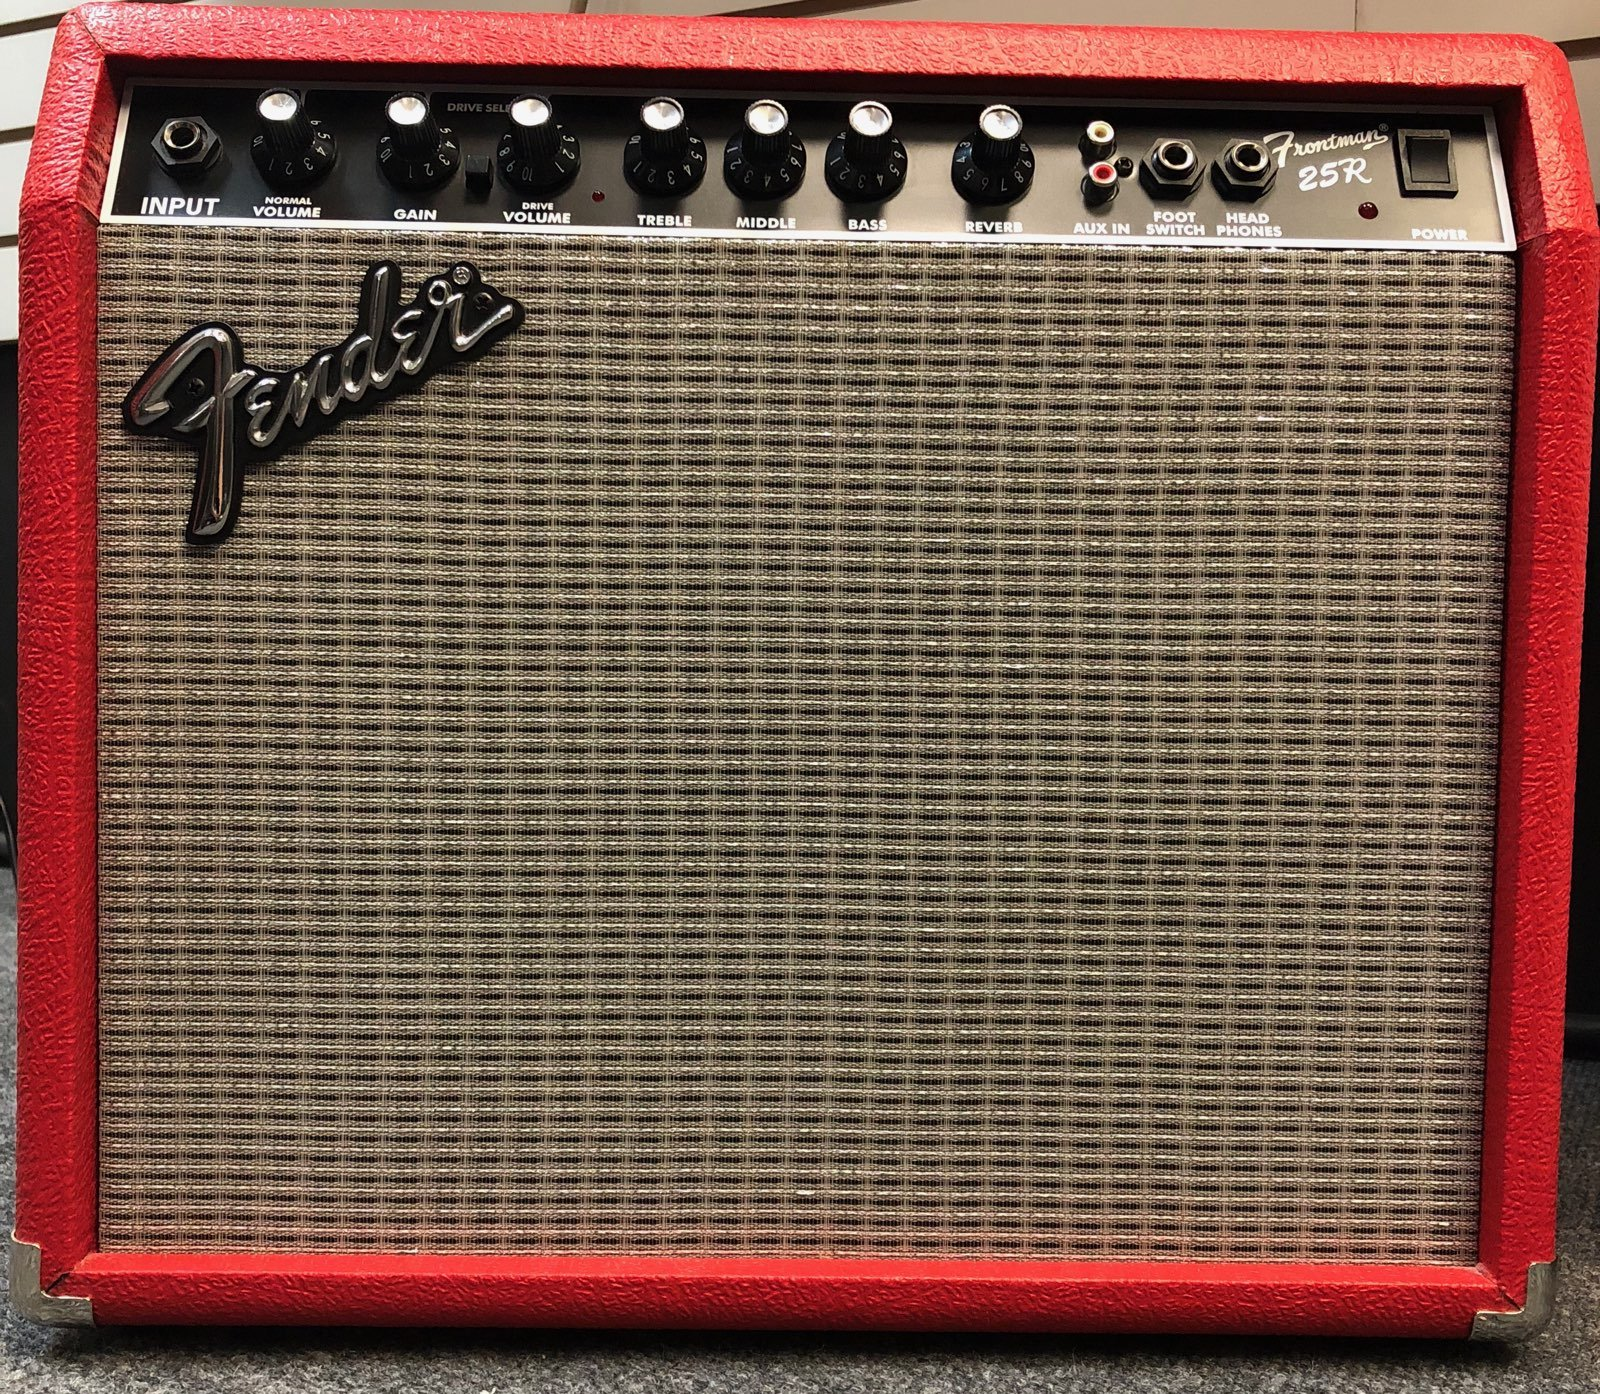 FENDER Frontman 25R Red